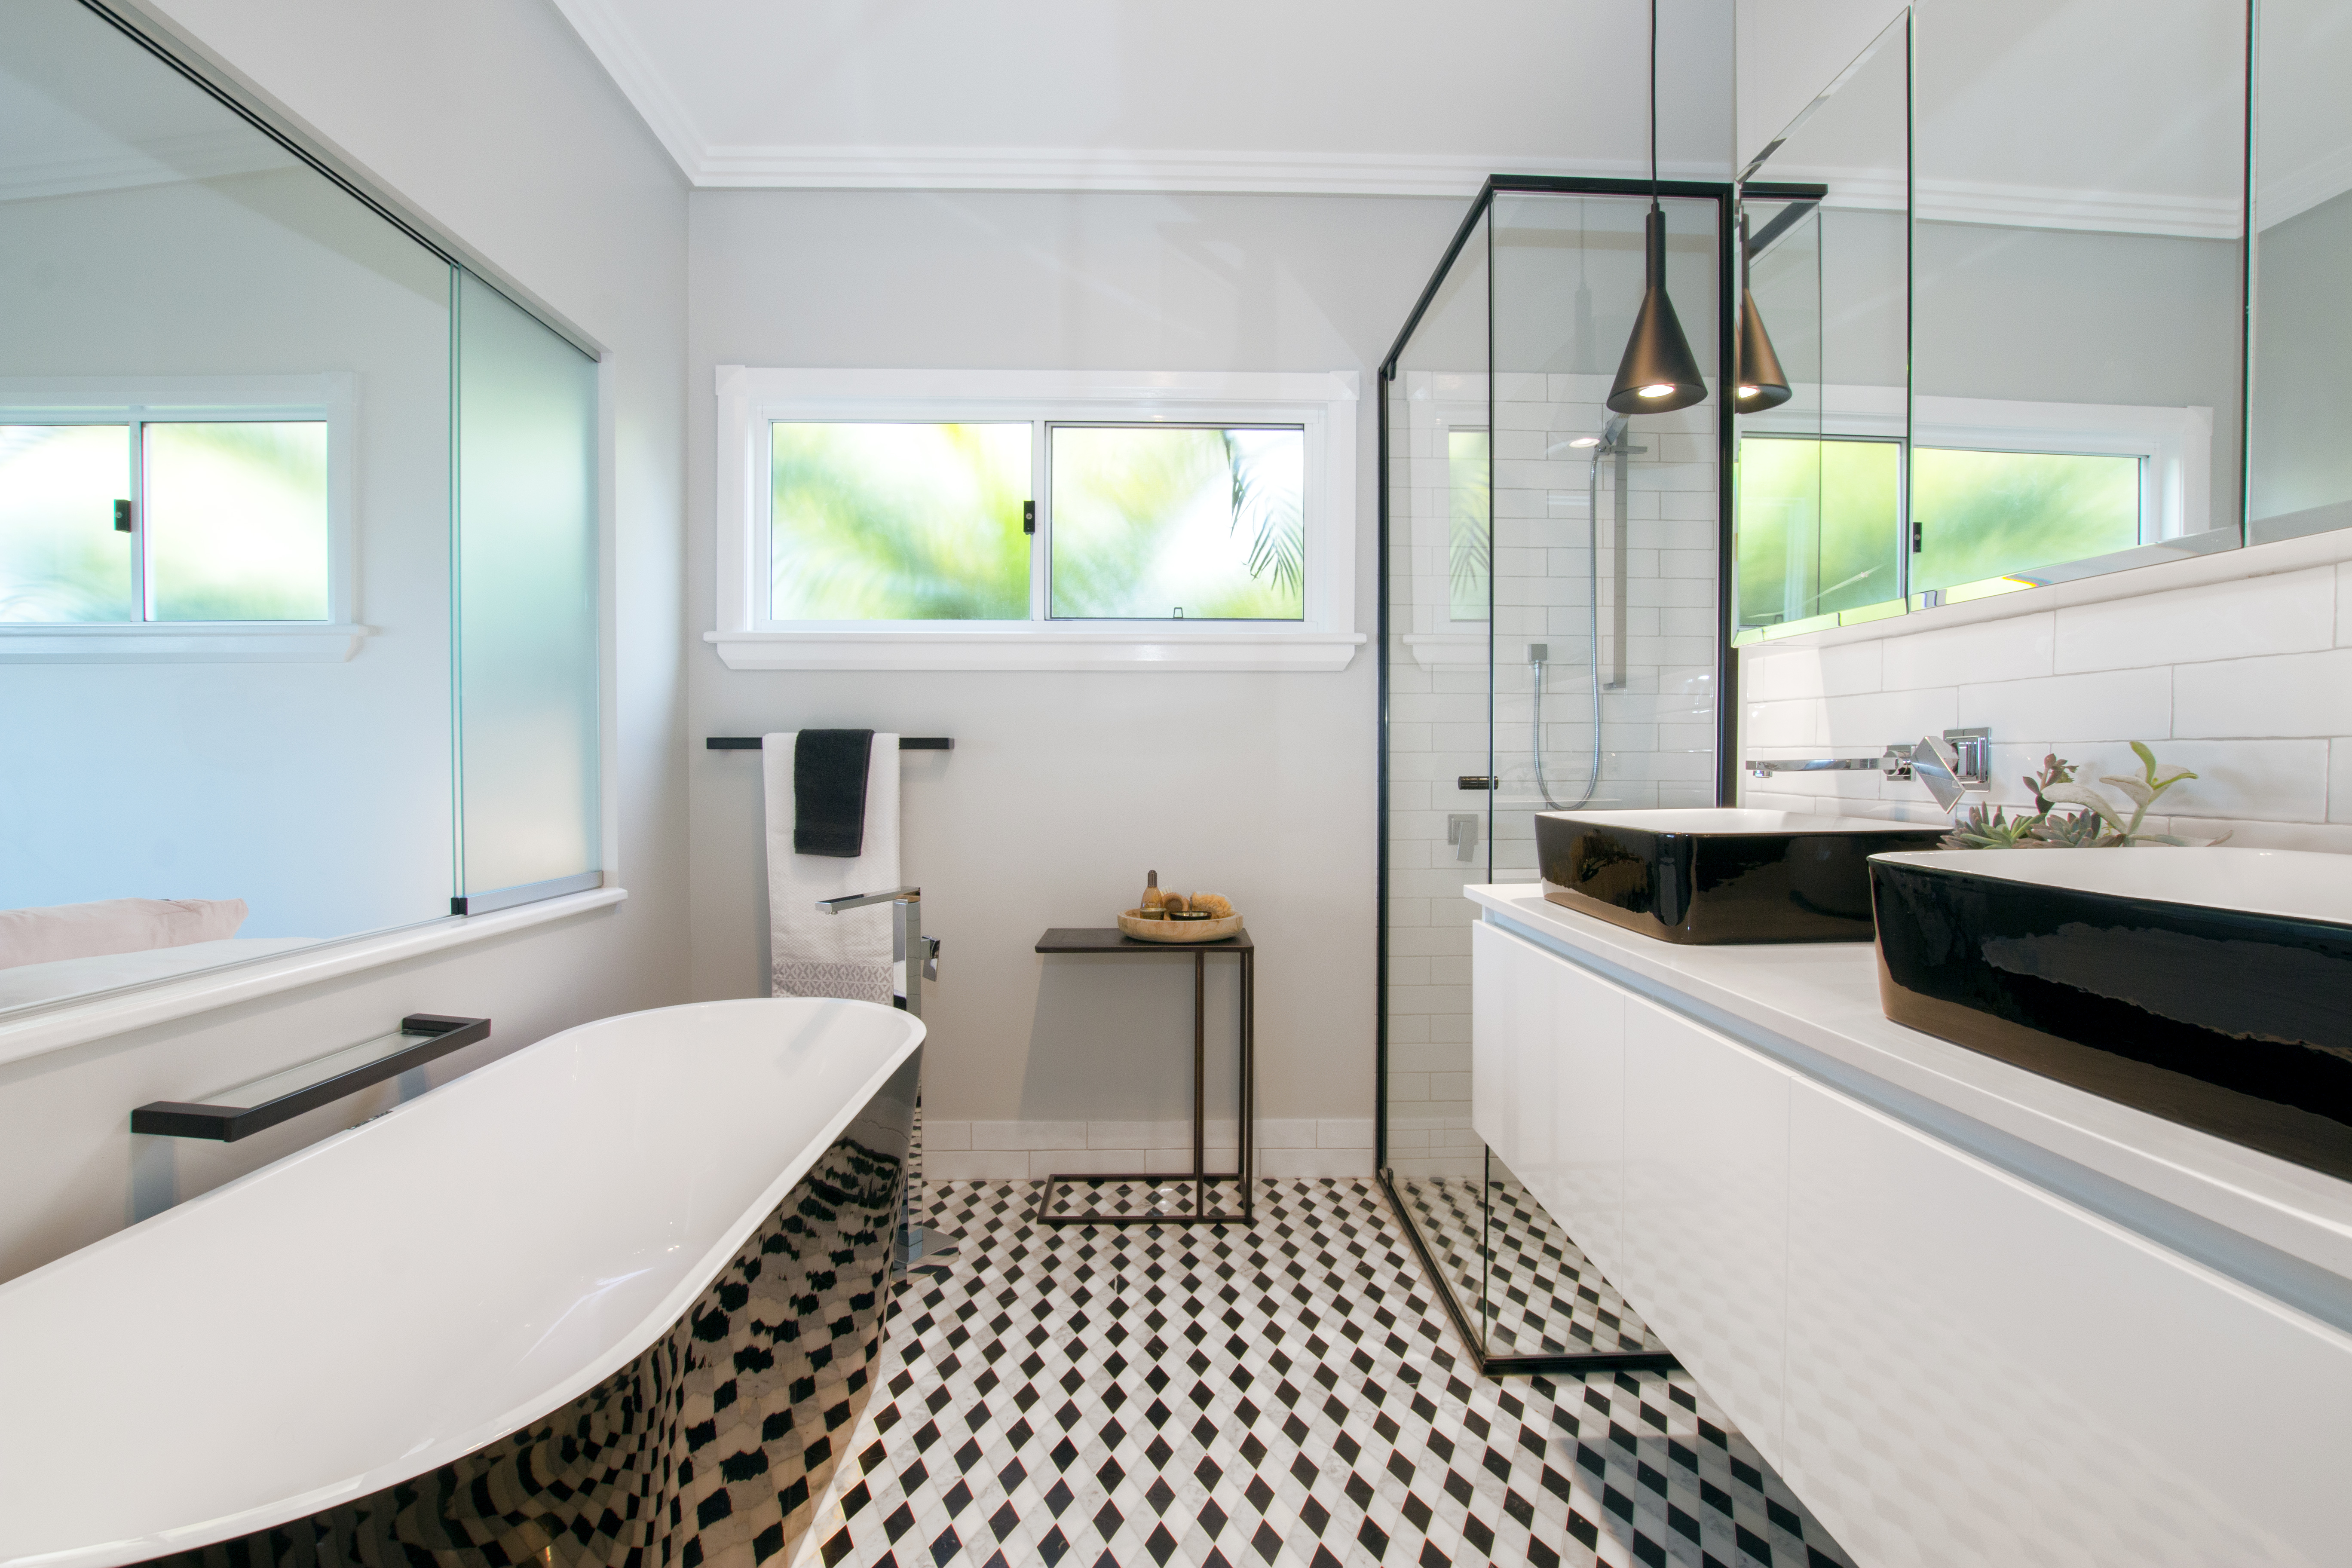 The Latest Bathroom Trends To Try!